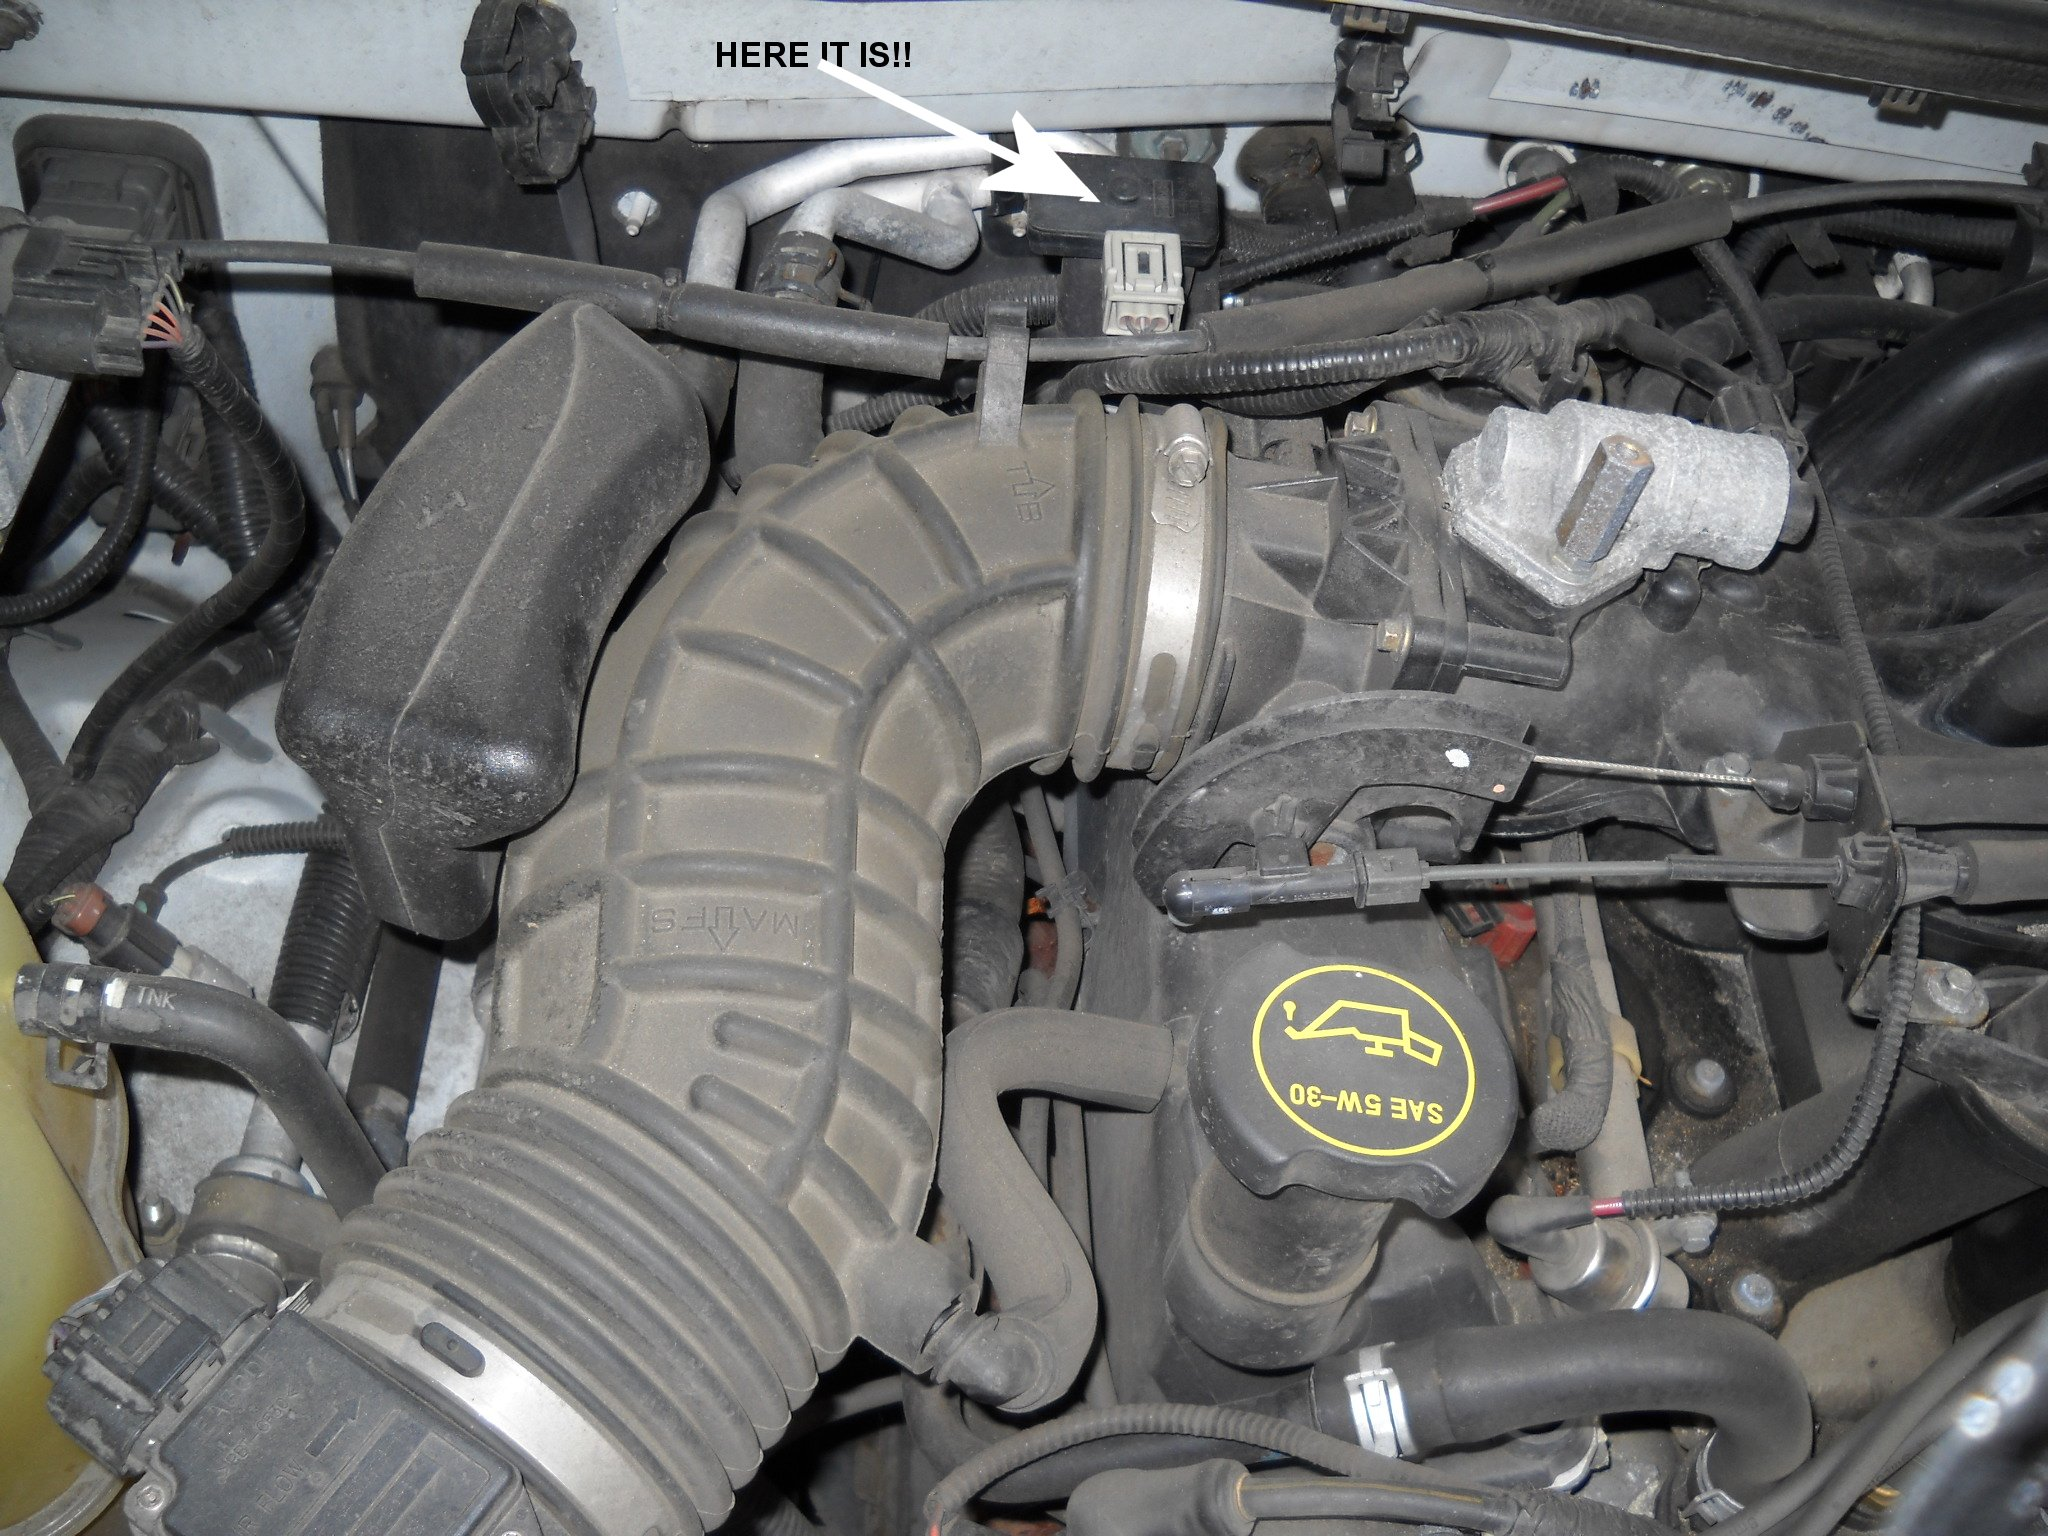 Ford F Fuse Box Diagram also Ford Explorer Sport Fuse Box Diagram Automotive Wiring With Regard To Ford Explorer Fuse Box moreover Tsb Fdmrfi likewise Pic further Ignition System Diagram. on 2001 ford explorer fuel pump wiring